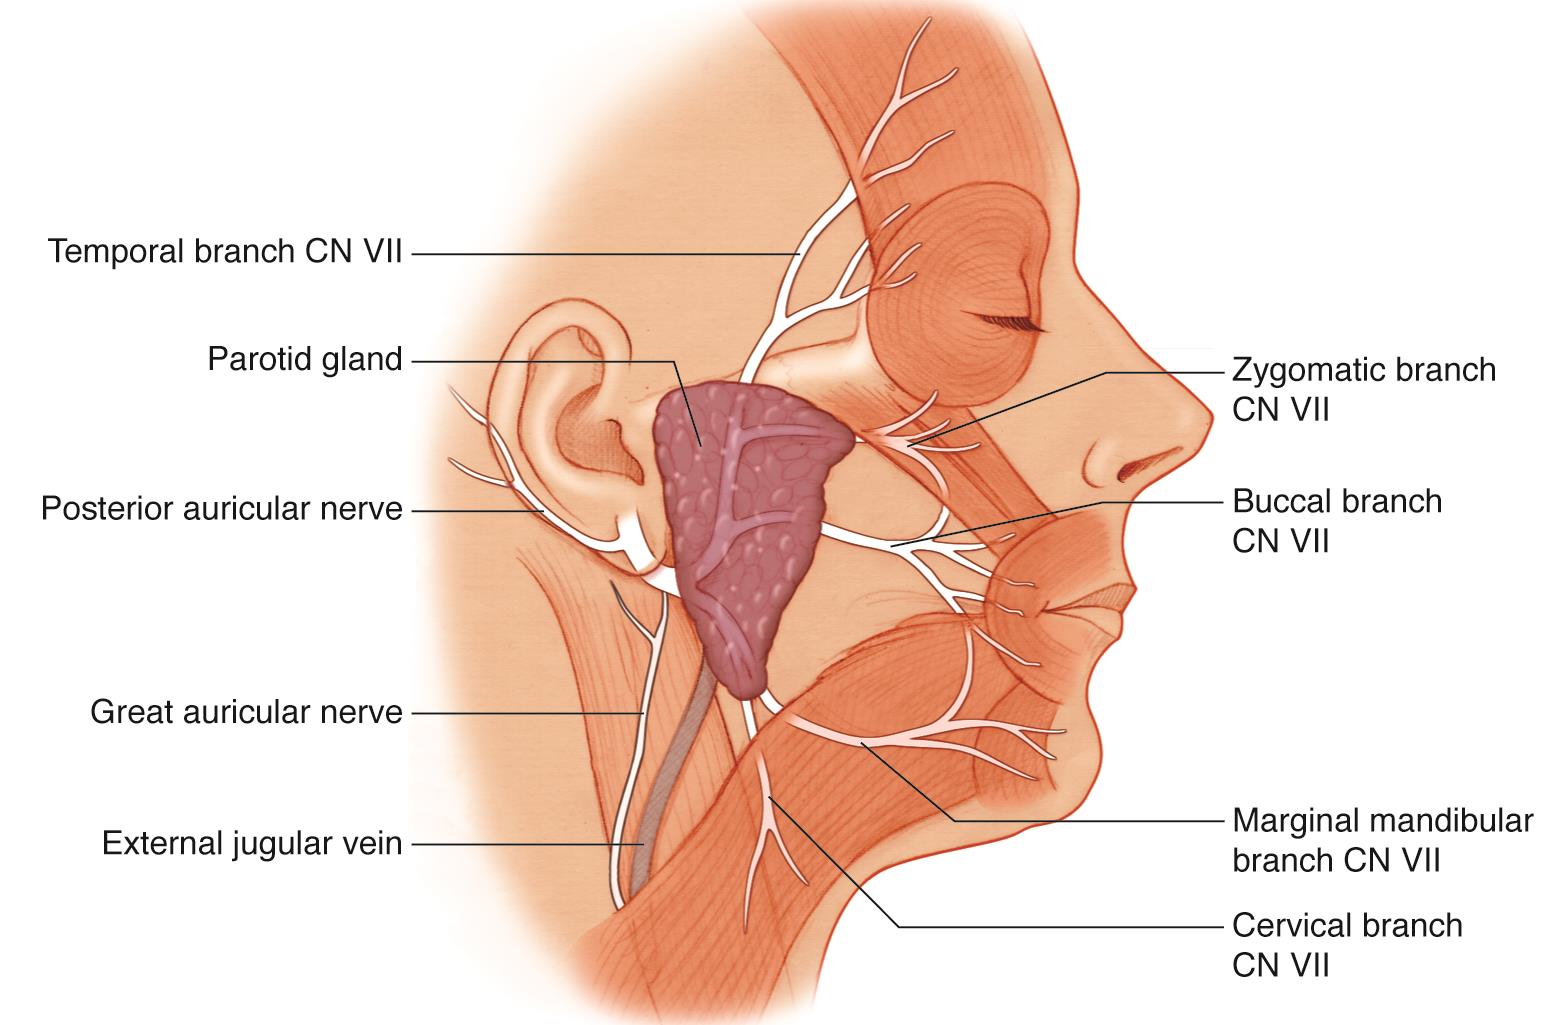 Major Branches Of The Facial Nerve American Academy Of Ophthalmology